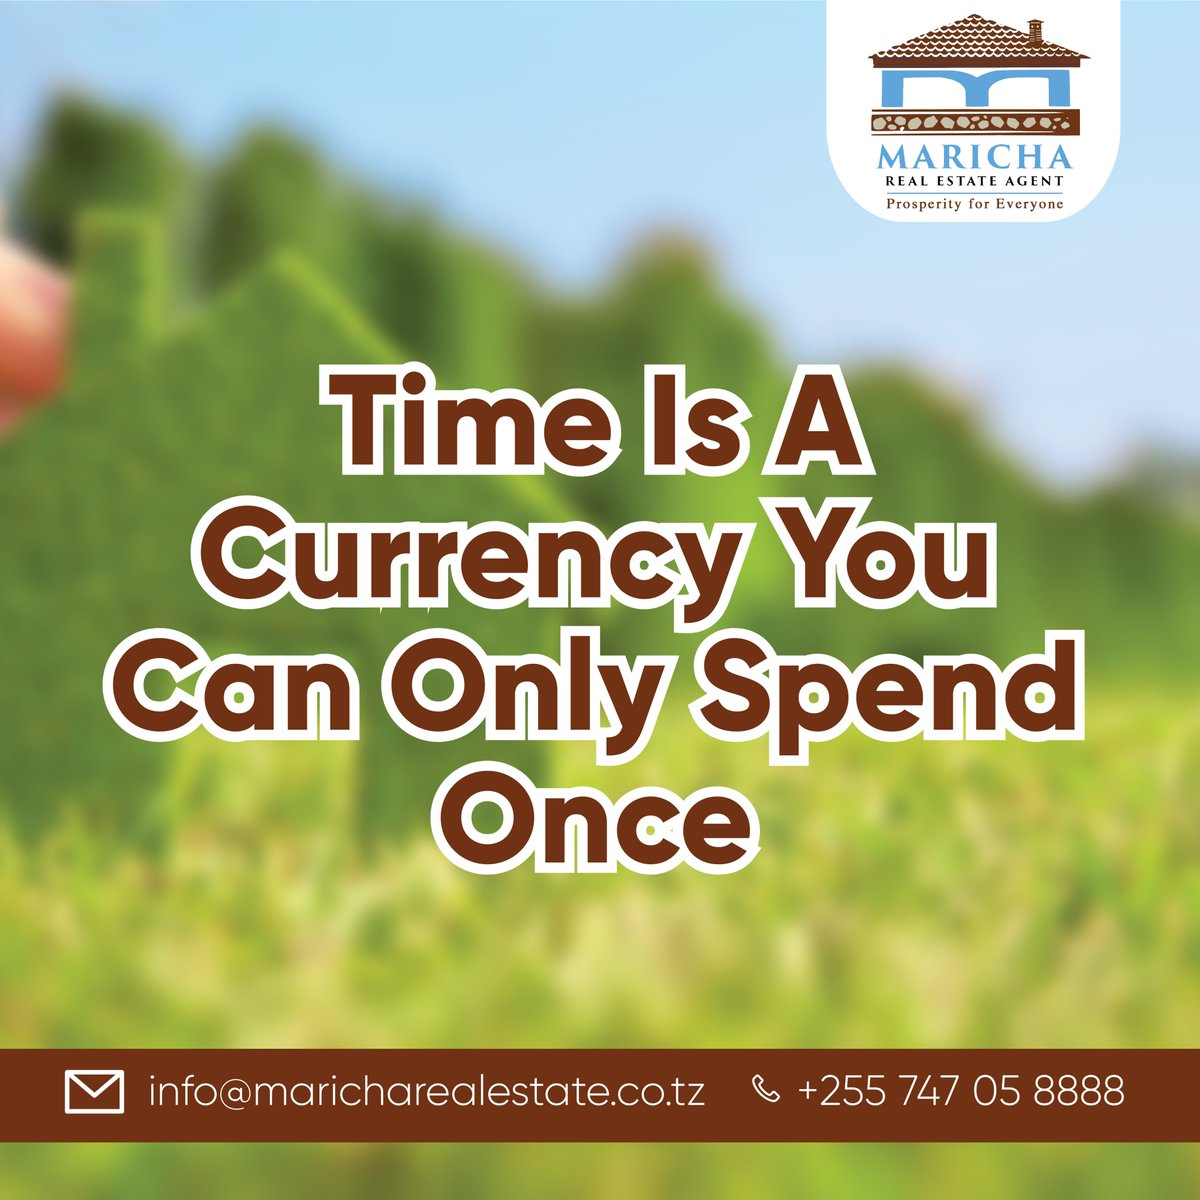 There is'nt a better time to invest in #realestate than now, dont wait for tomorrow own a house or land today. #realestate are #realestateforsale #realestatelife #listing #househunting #investmentproperty #realty #realestateinvesting #realtor #homesforsale #realestateagent pic.twitter.com/ZpKZb12Ffj